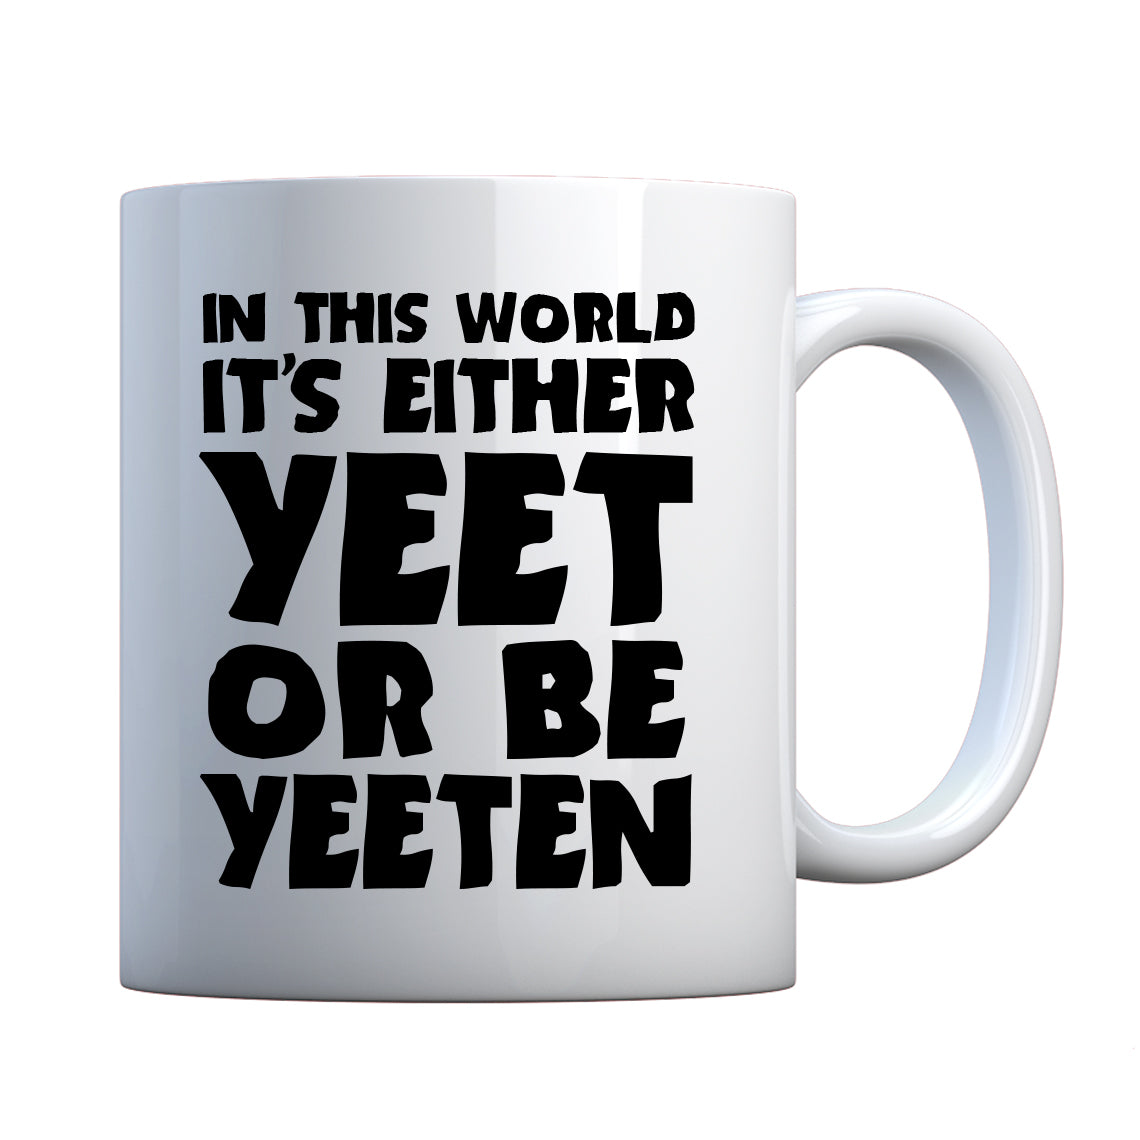 Yeet or by Yeeten Ceramic Gift Mug